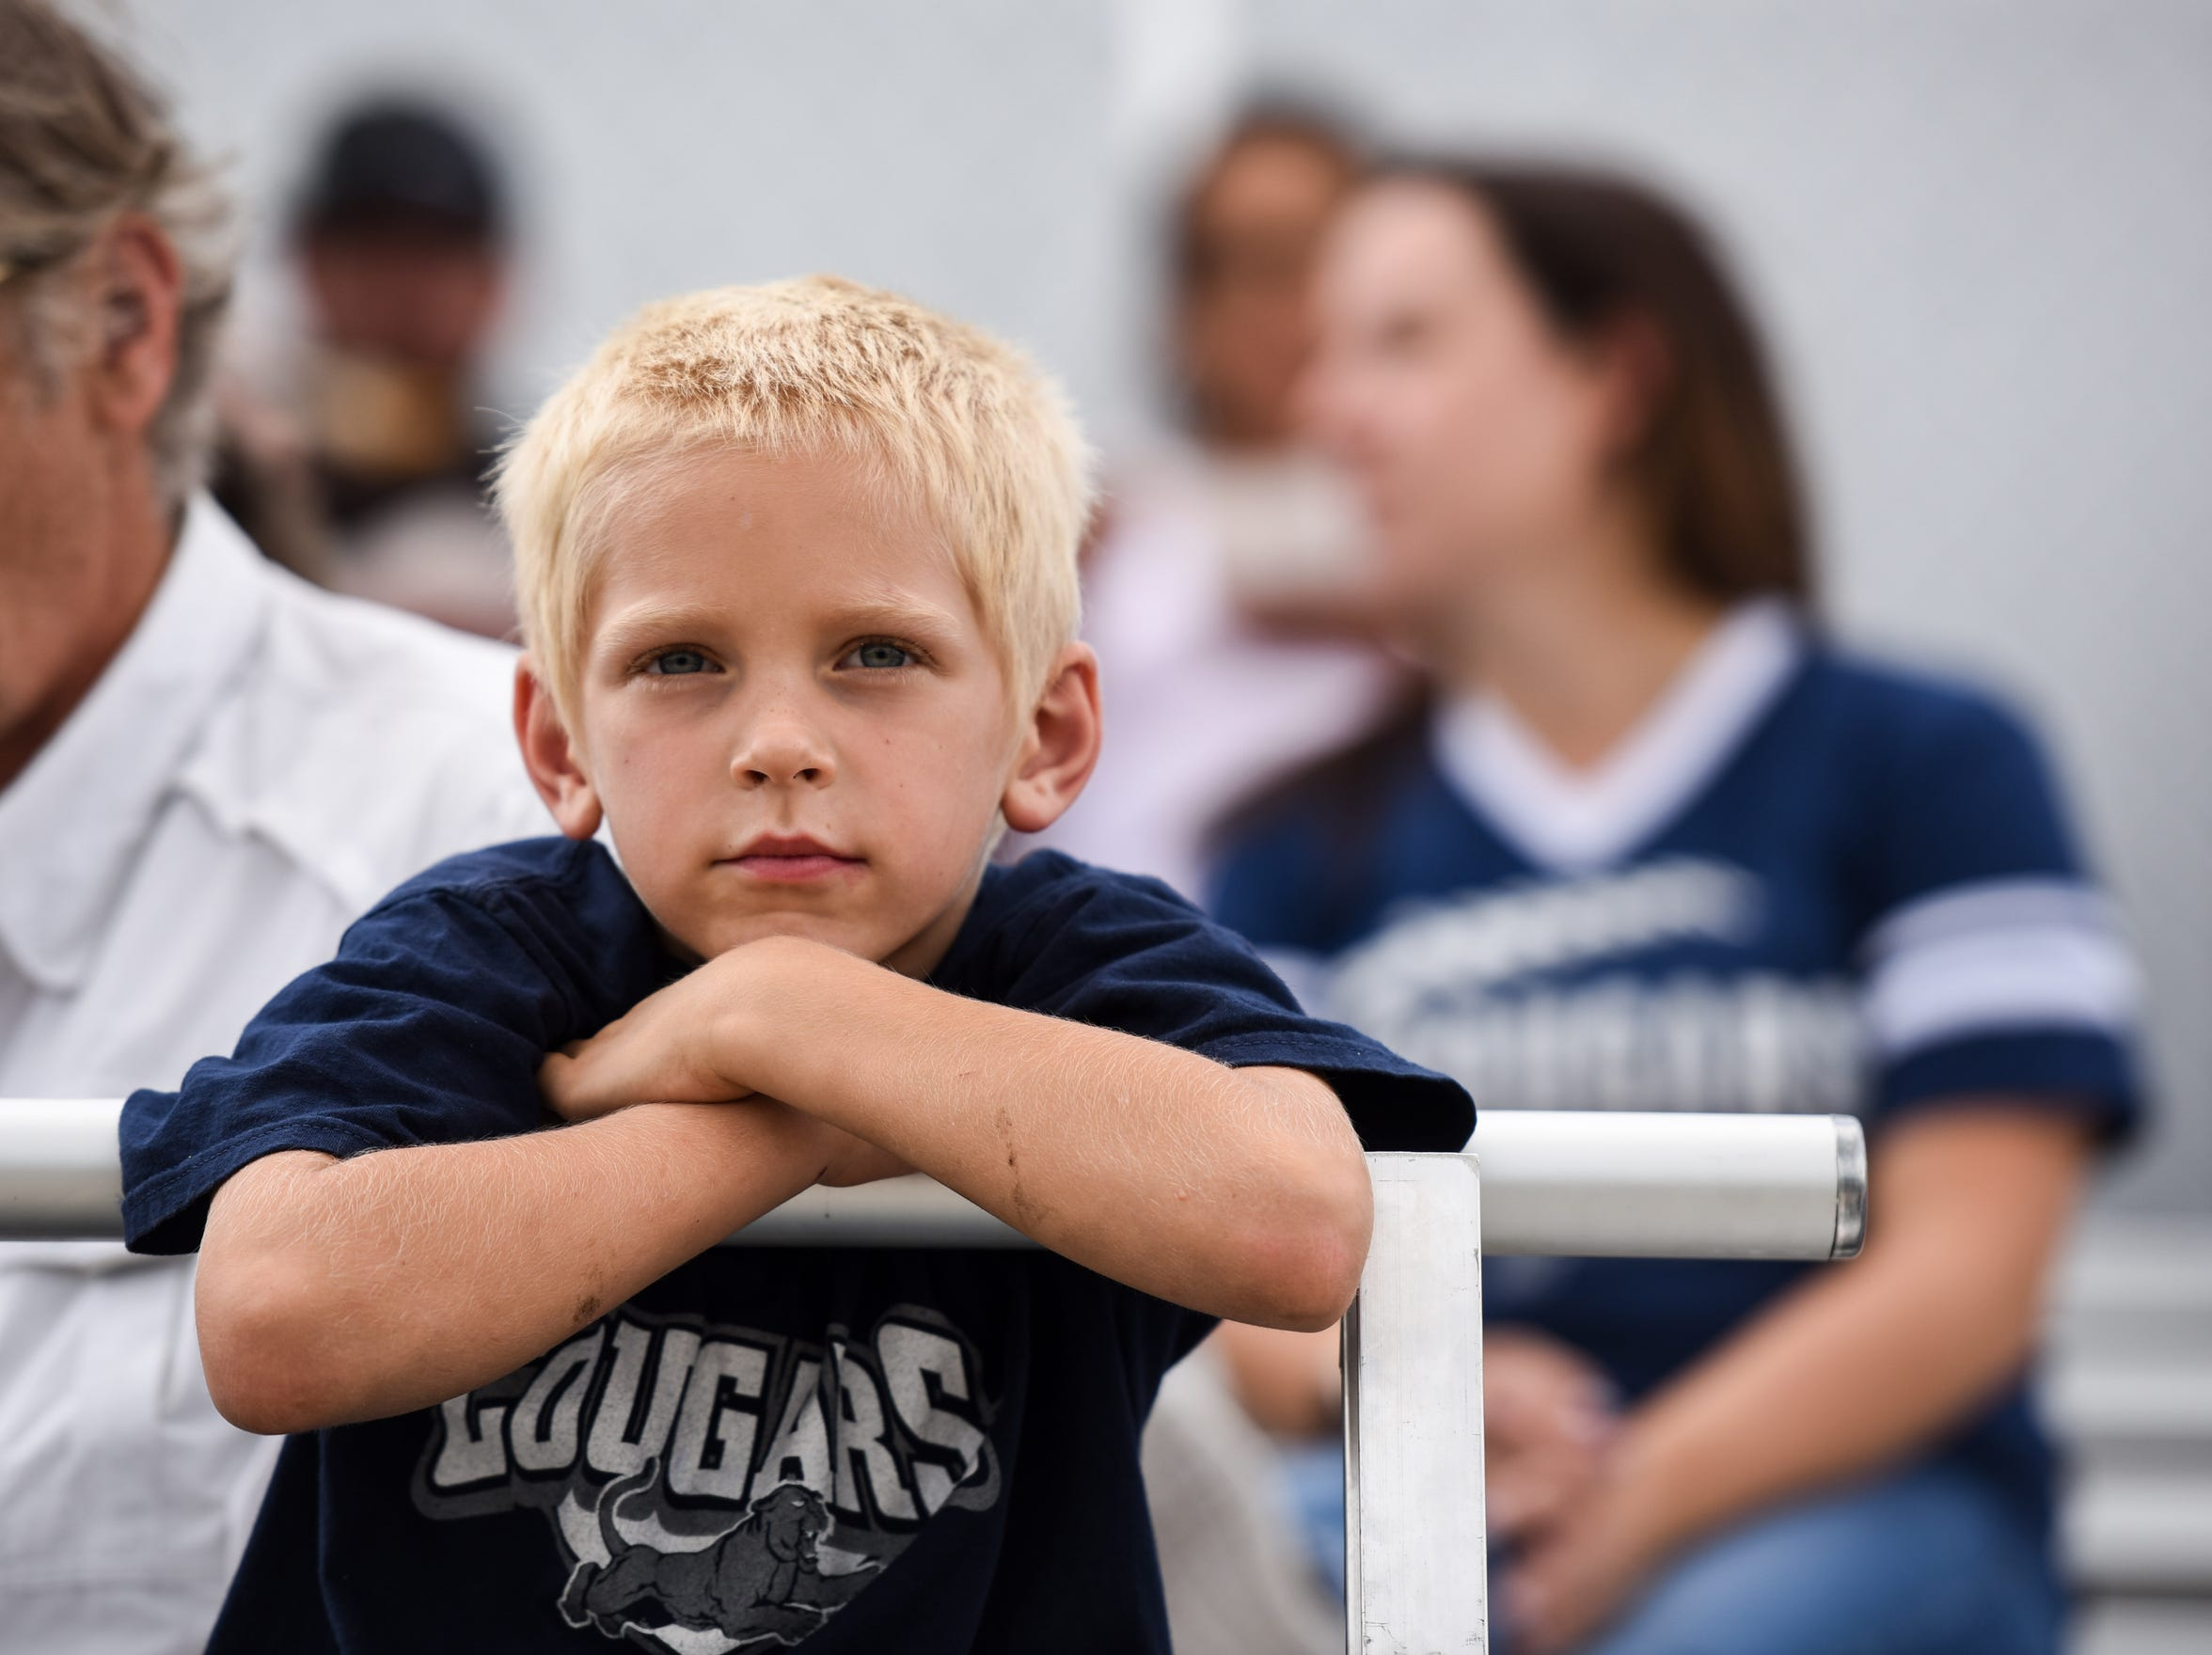 Michael Haugen, 6, watches Burke High School football team before the game at Tolstedt field, Friday, Aug. 23.